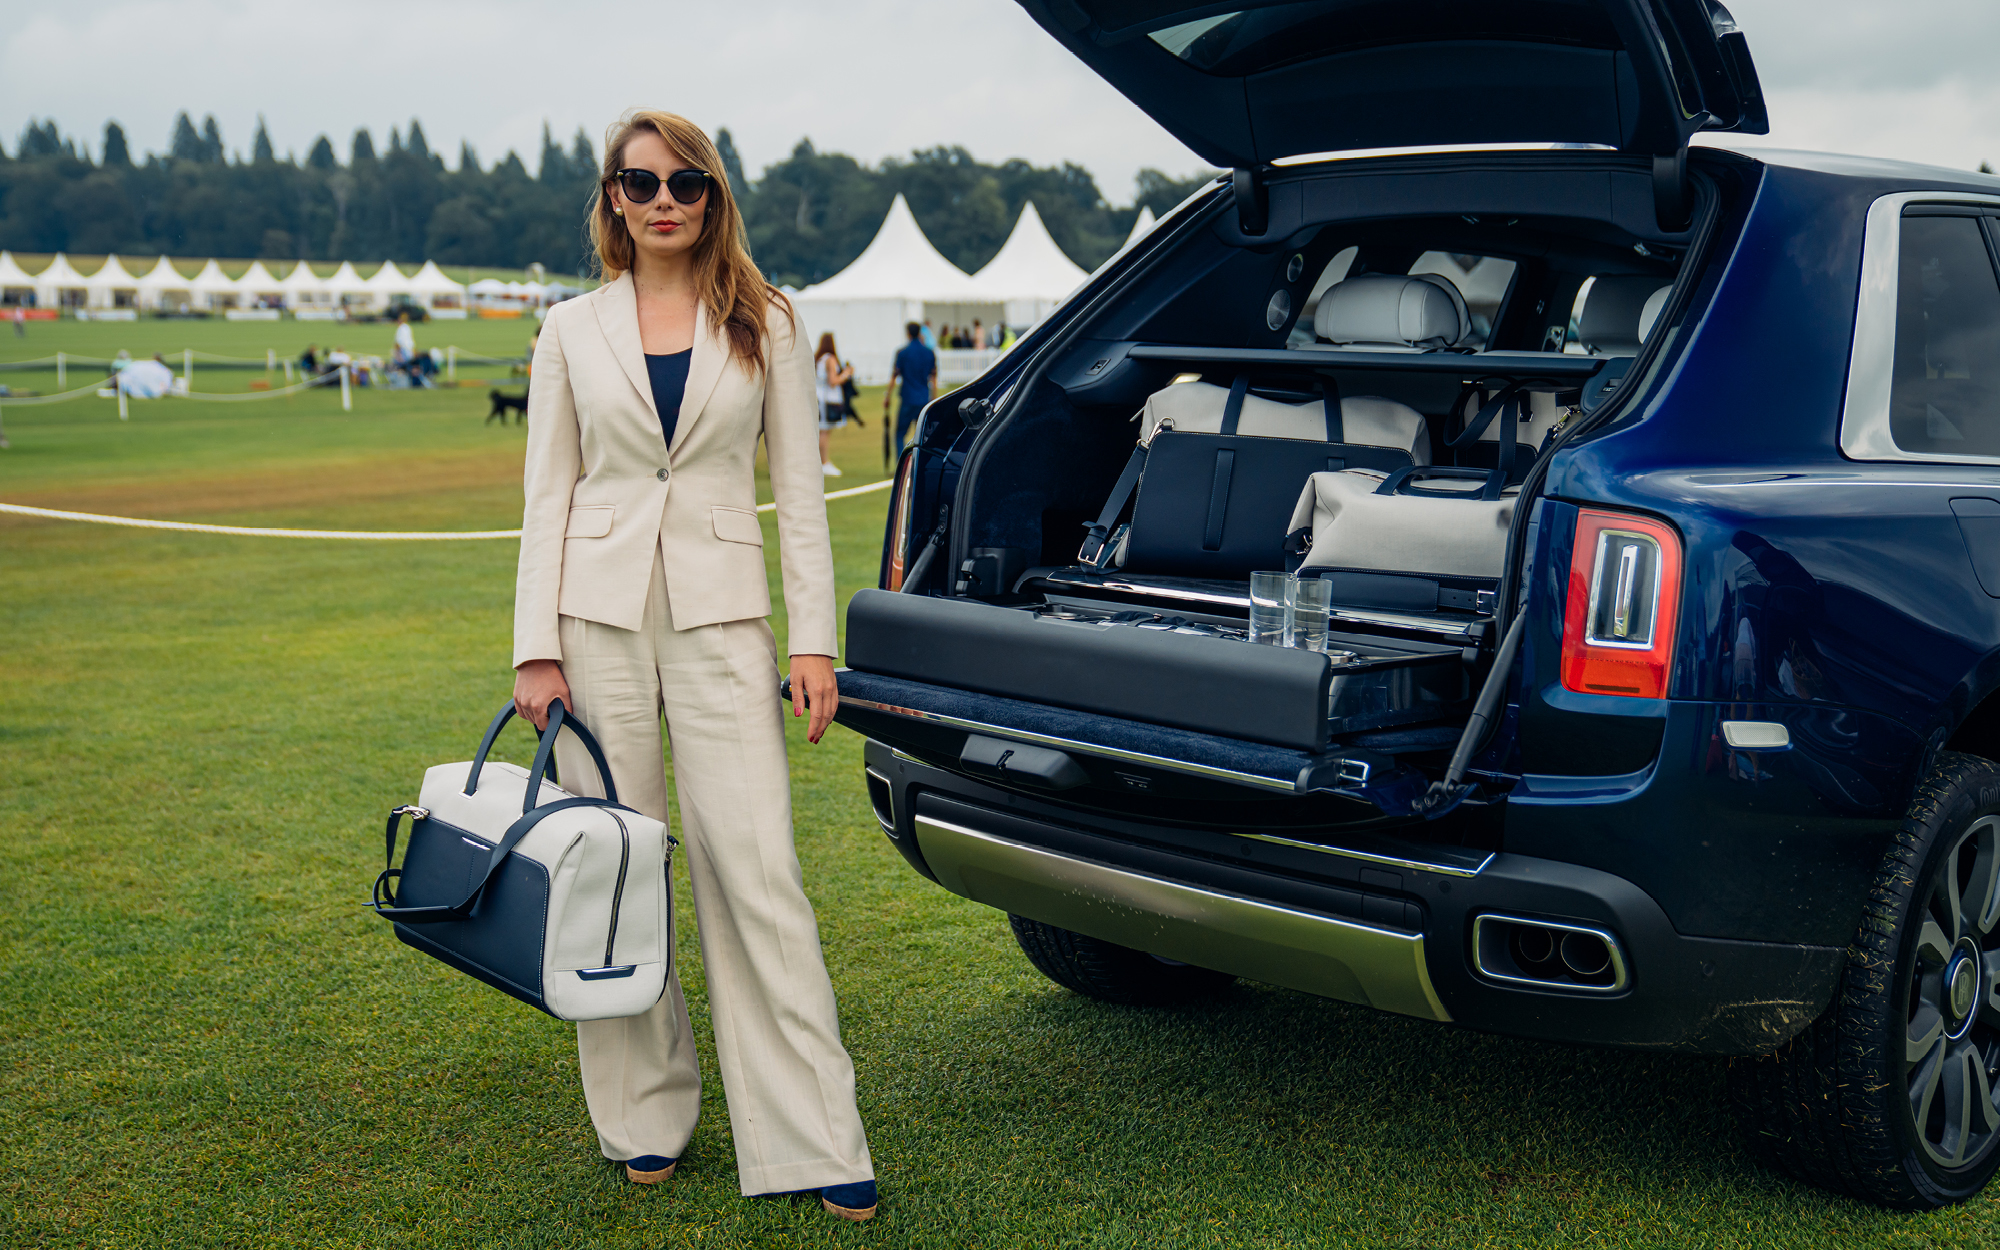 Jemima Wilson tries out Rolls-Royce's new SUV